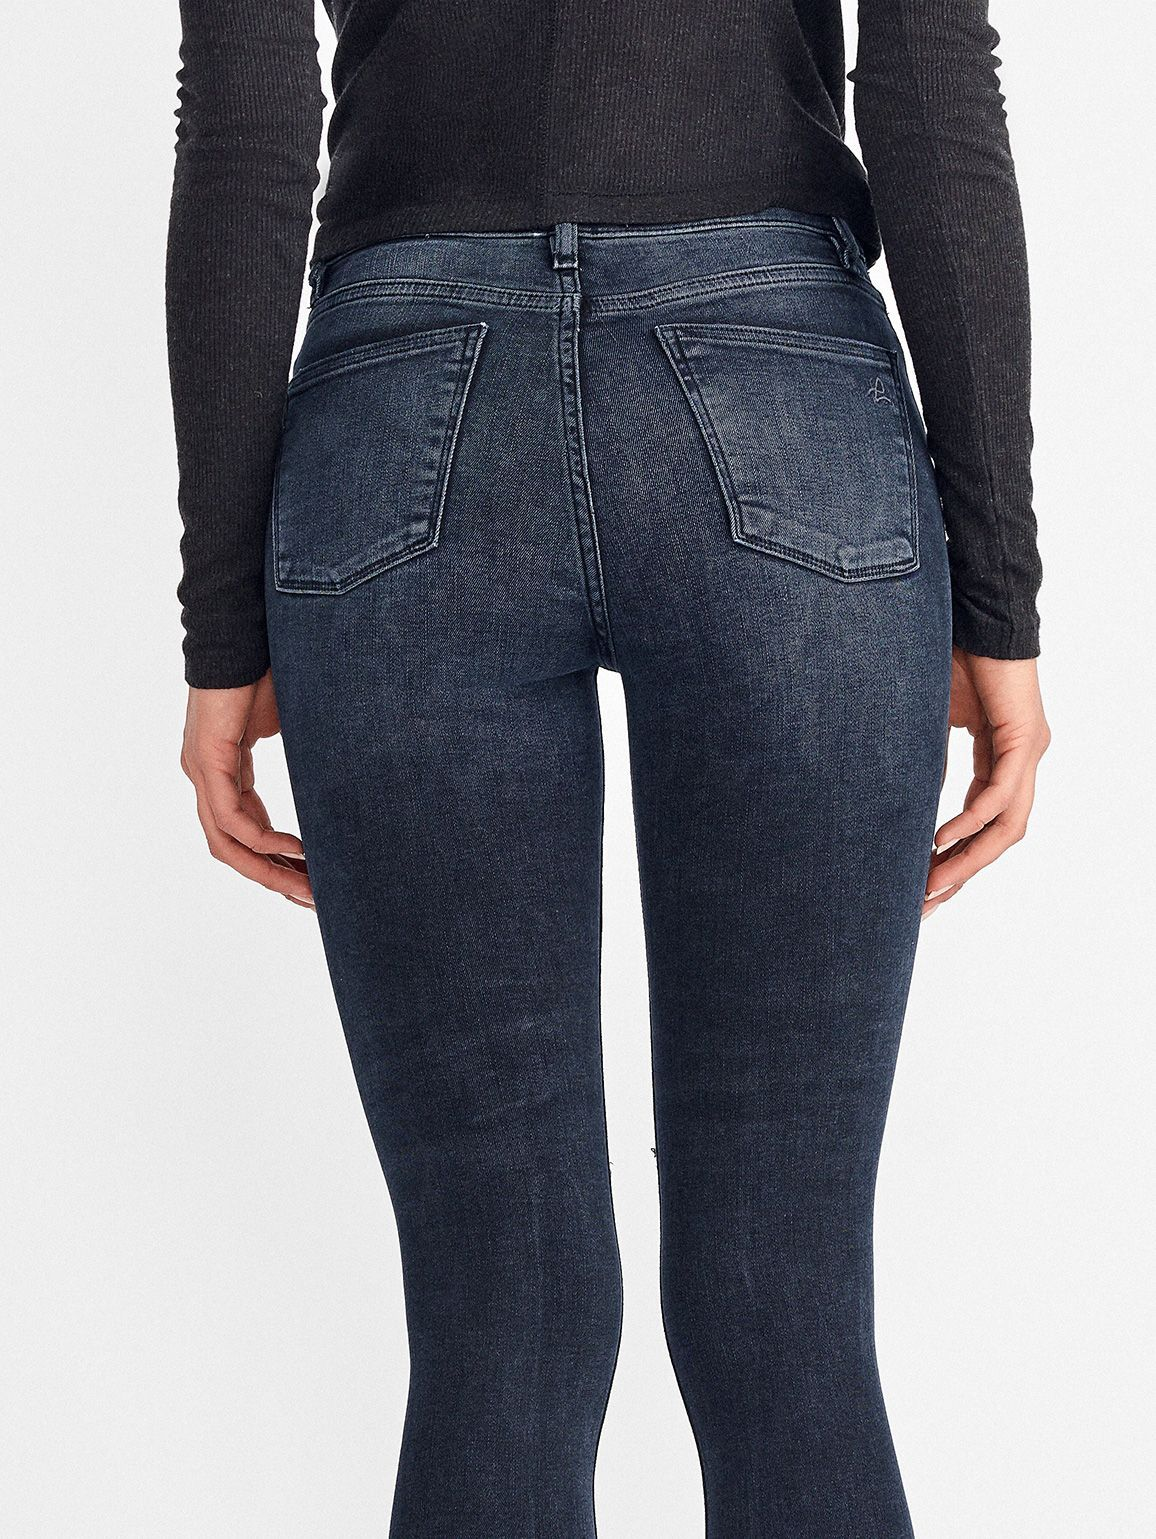 Women - Chrissy Ultra High Rise Skinny | Porter - DL1961